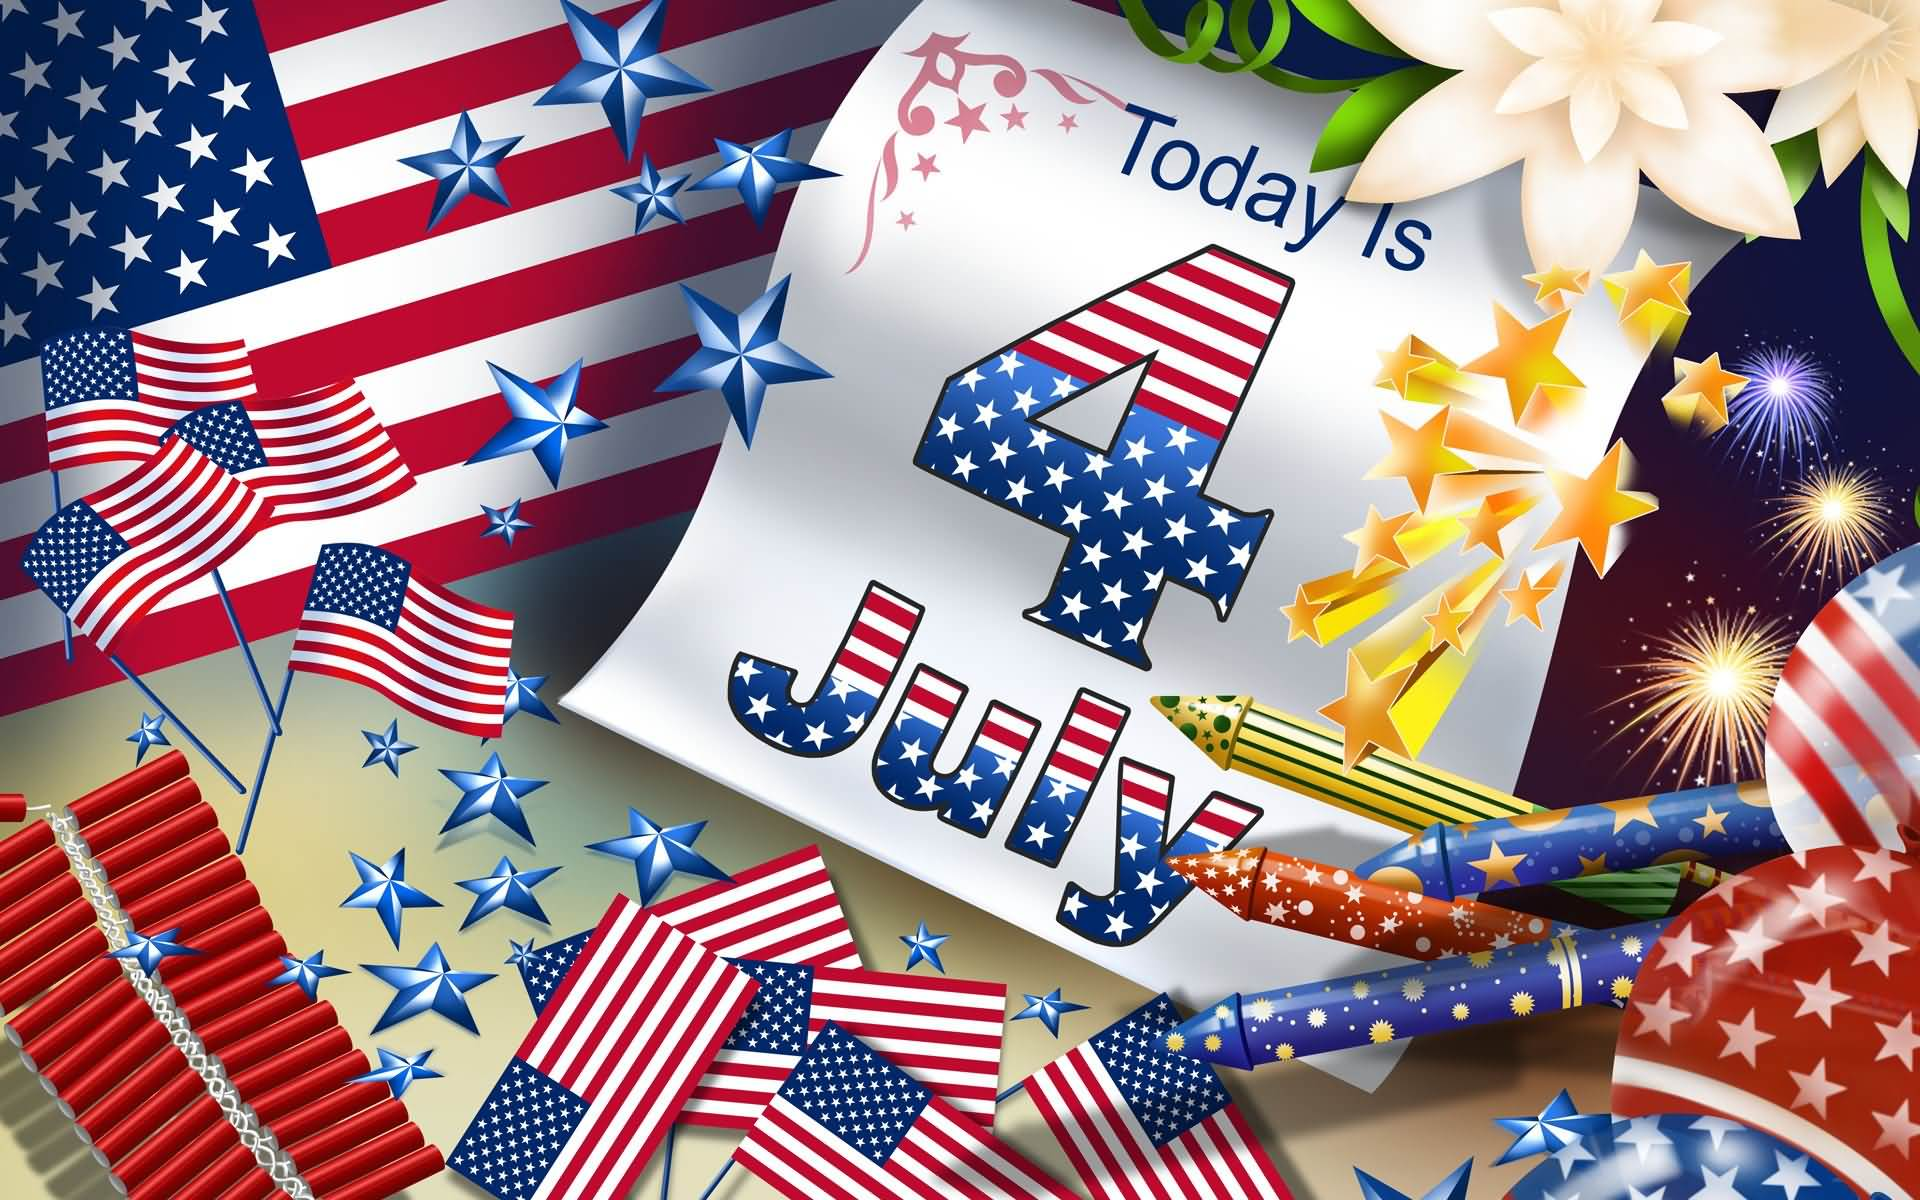 Today Is 4 July Image